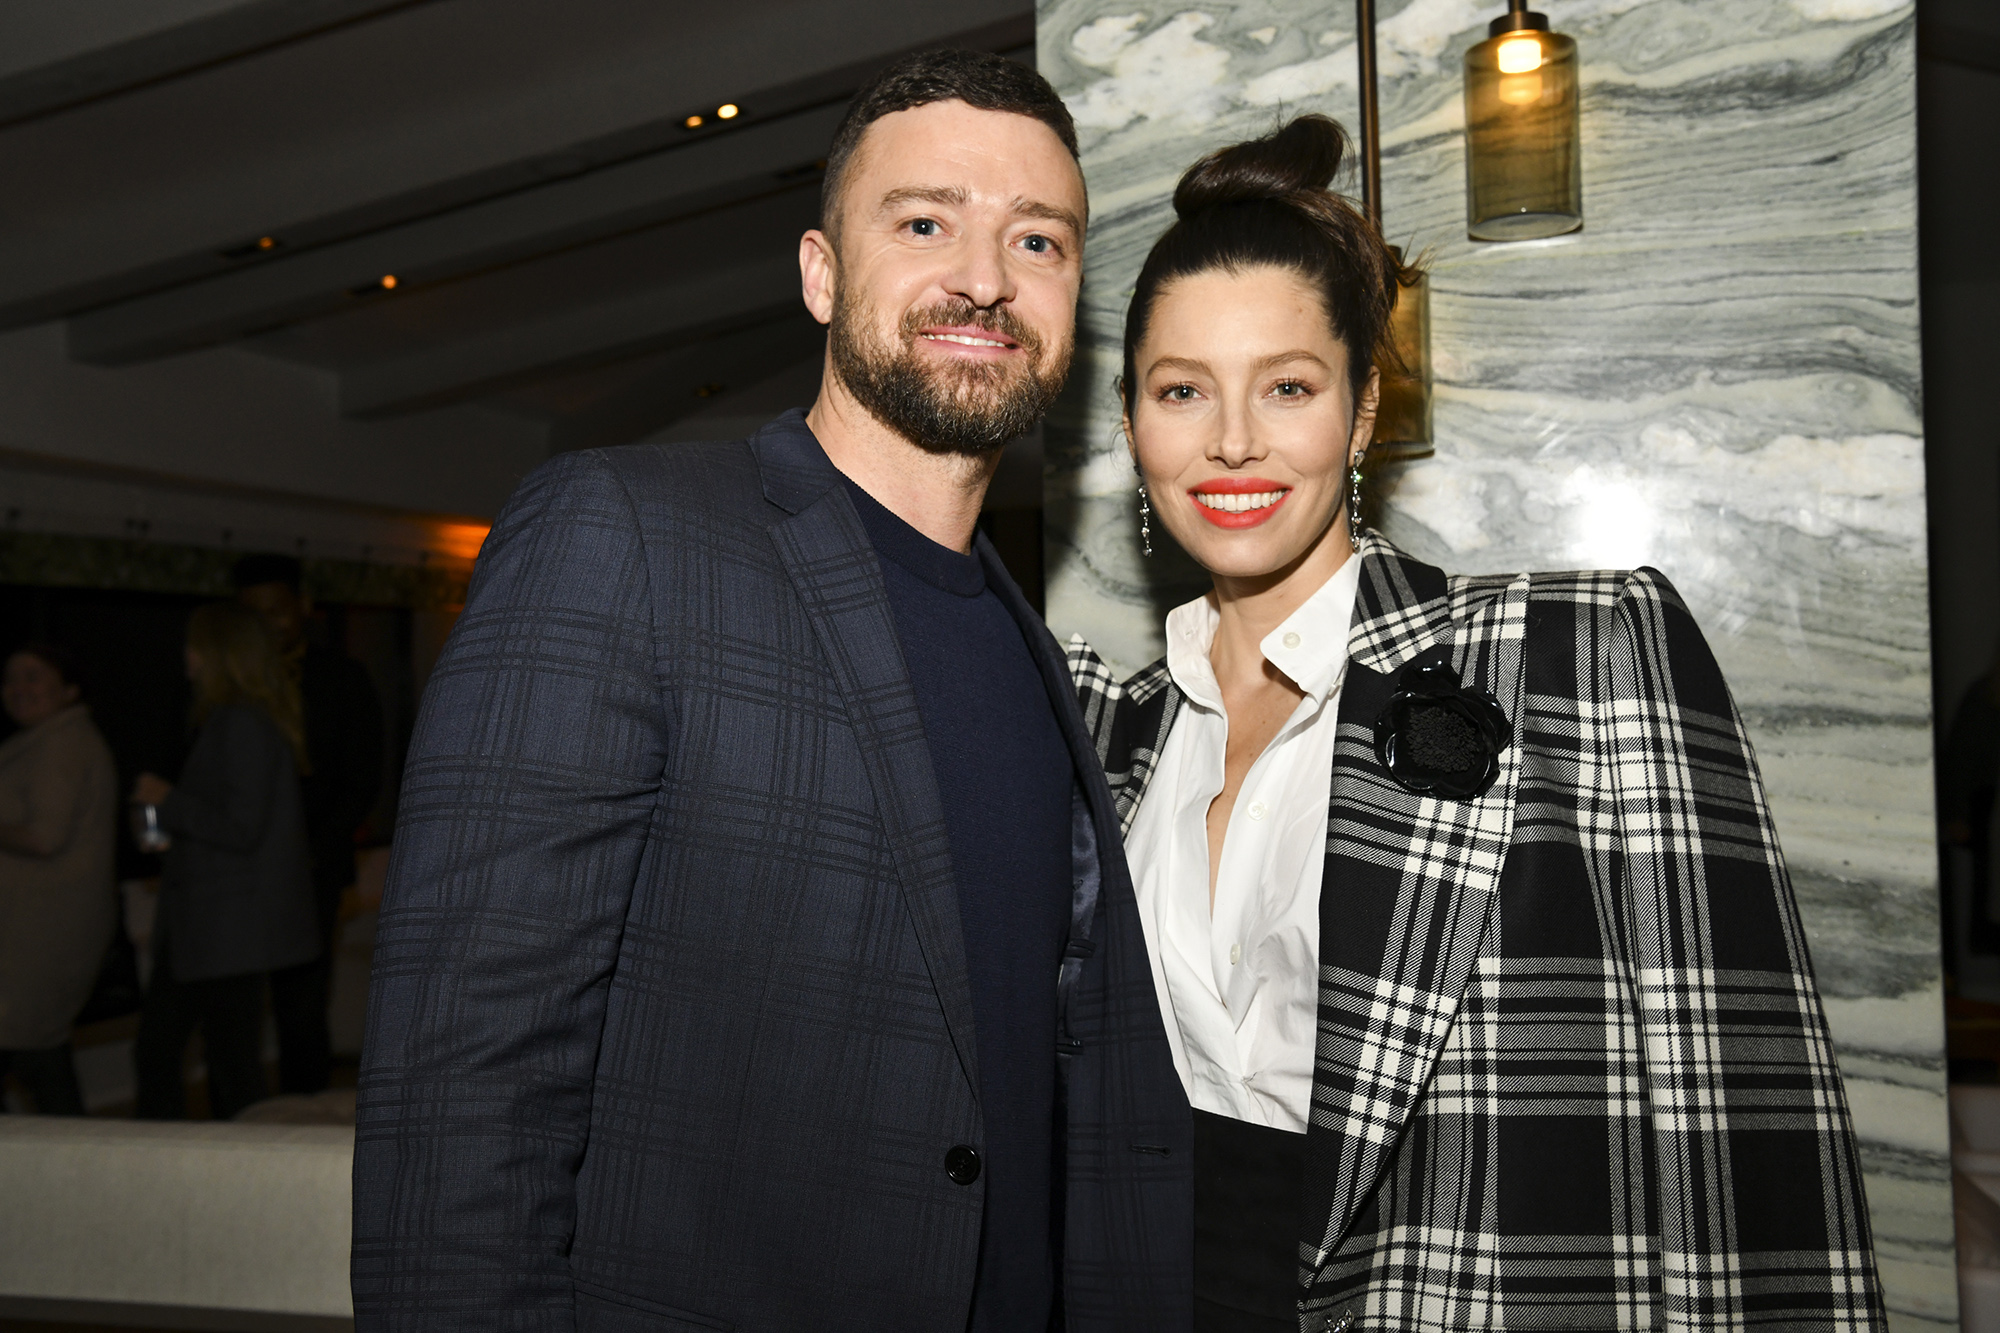 Justin Timberlake confirms he, Jessica Biel had second child